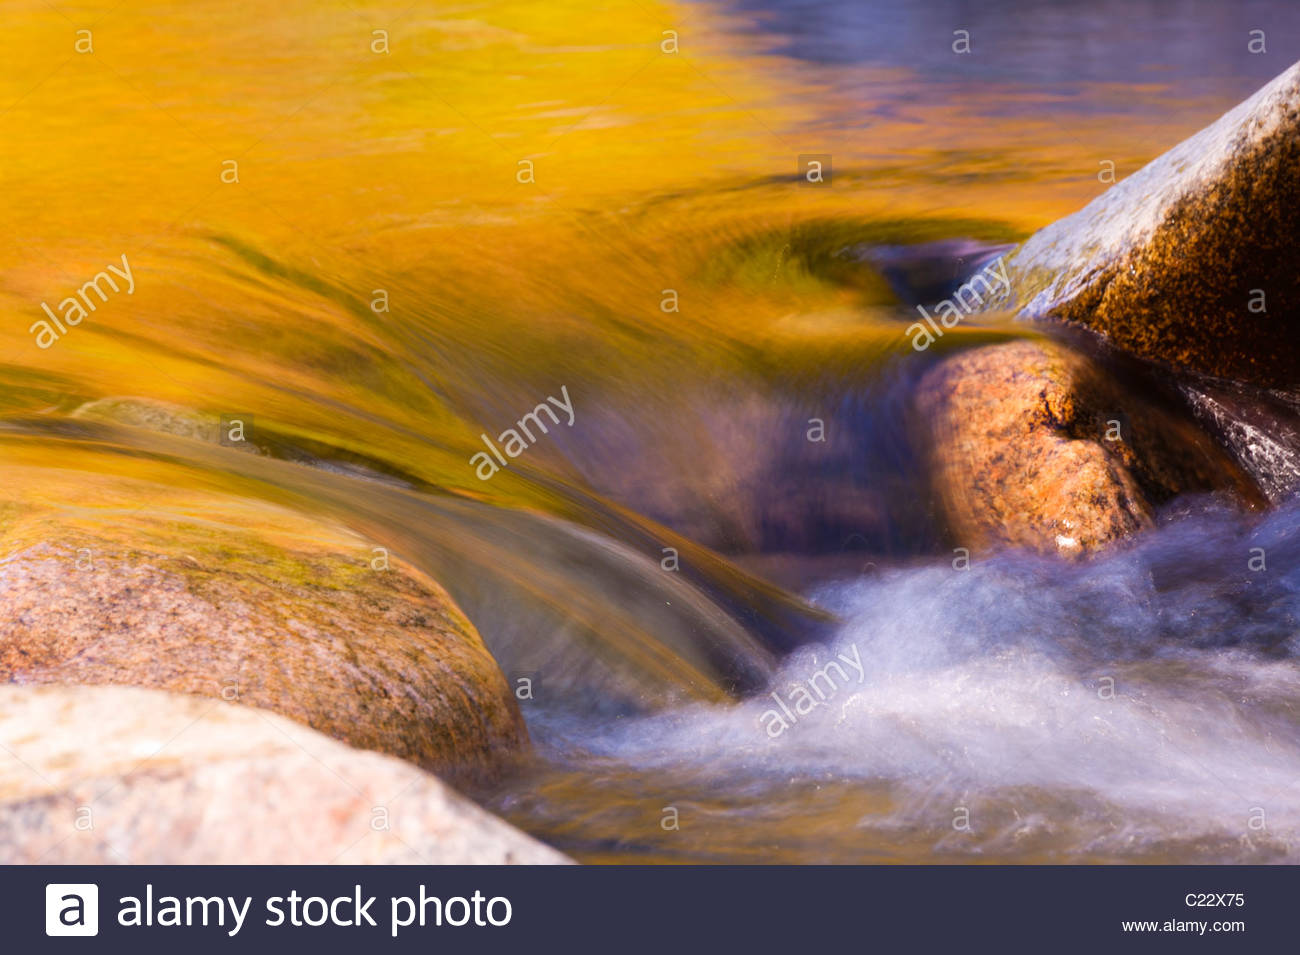 Vibrant fall colors reflect on the Swift River, which flows through the White Mountains in New Hampshire. - Stock Image